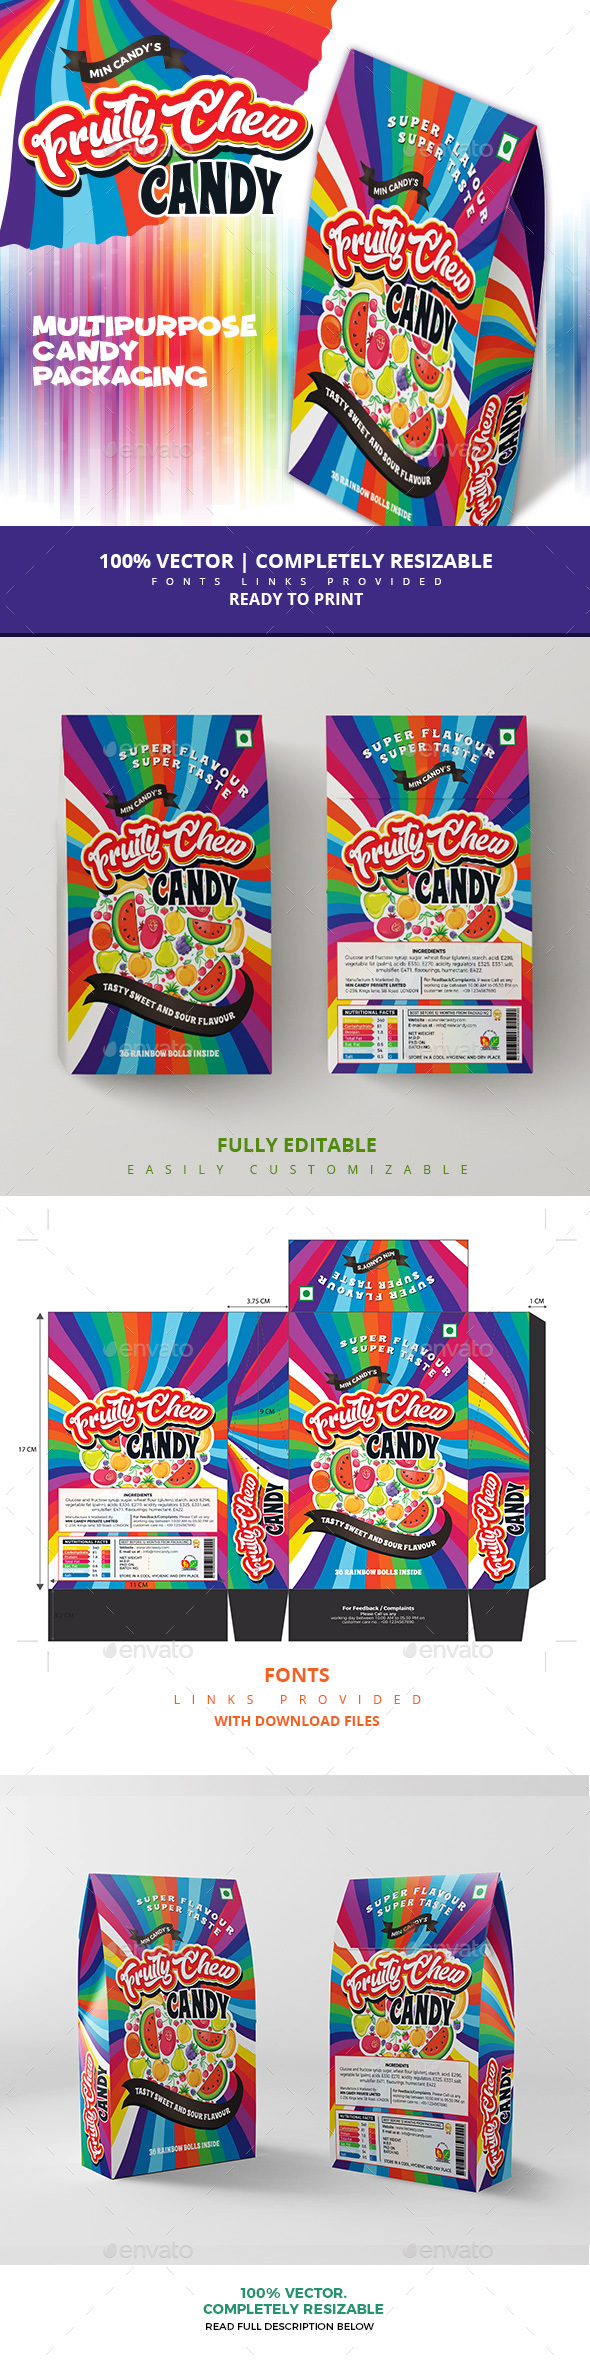 Mixed Fruit Candy Packaging - Packaging Print Templates